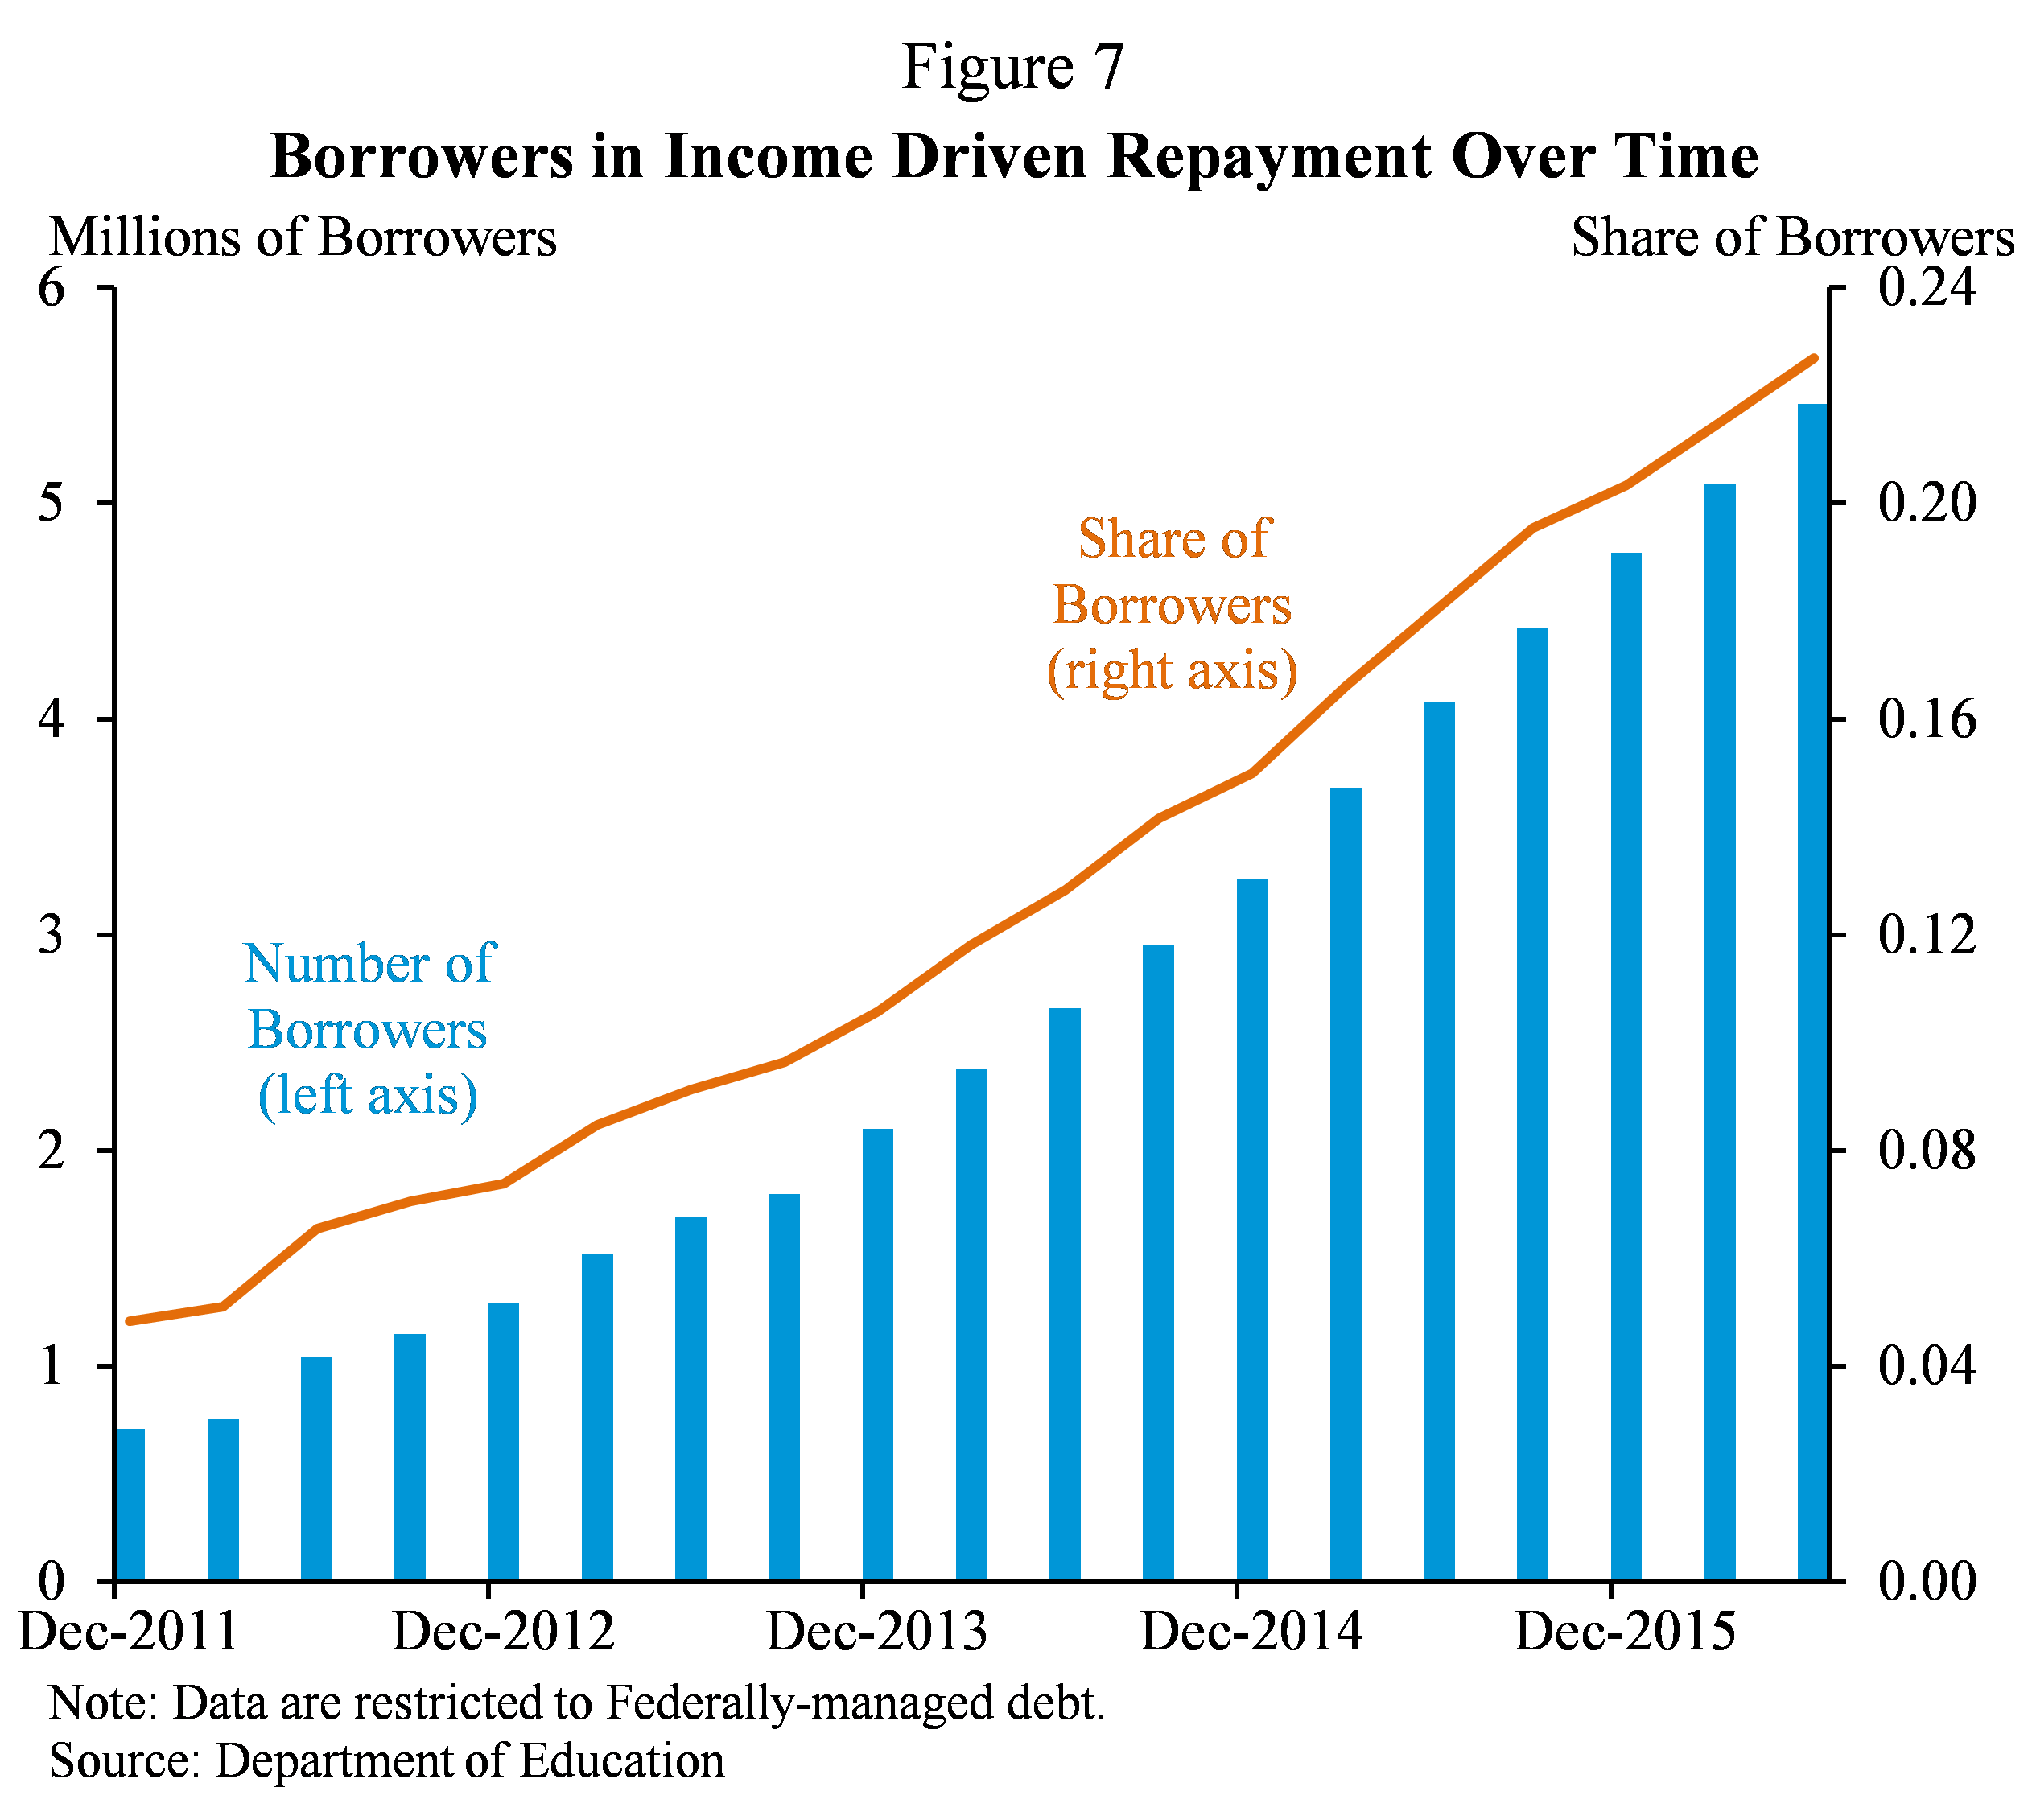 Figure 7. Borrowers in Income Driven Repayment Over Time